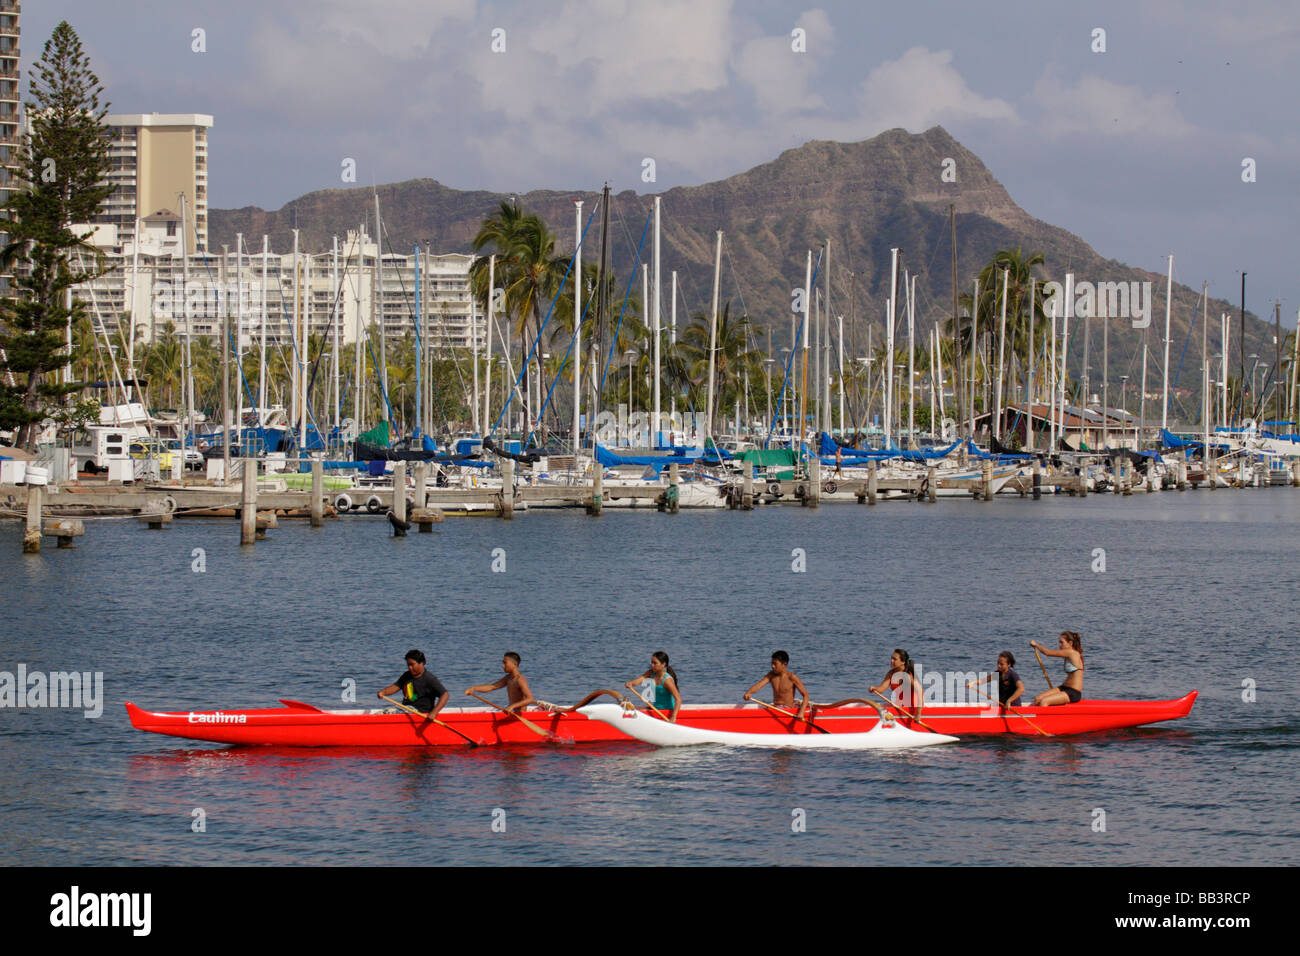 High school students practicing in outrigger canoes Ala Moana Beach Park Waikiki Oahu Hawaii USA - Stock Image